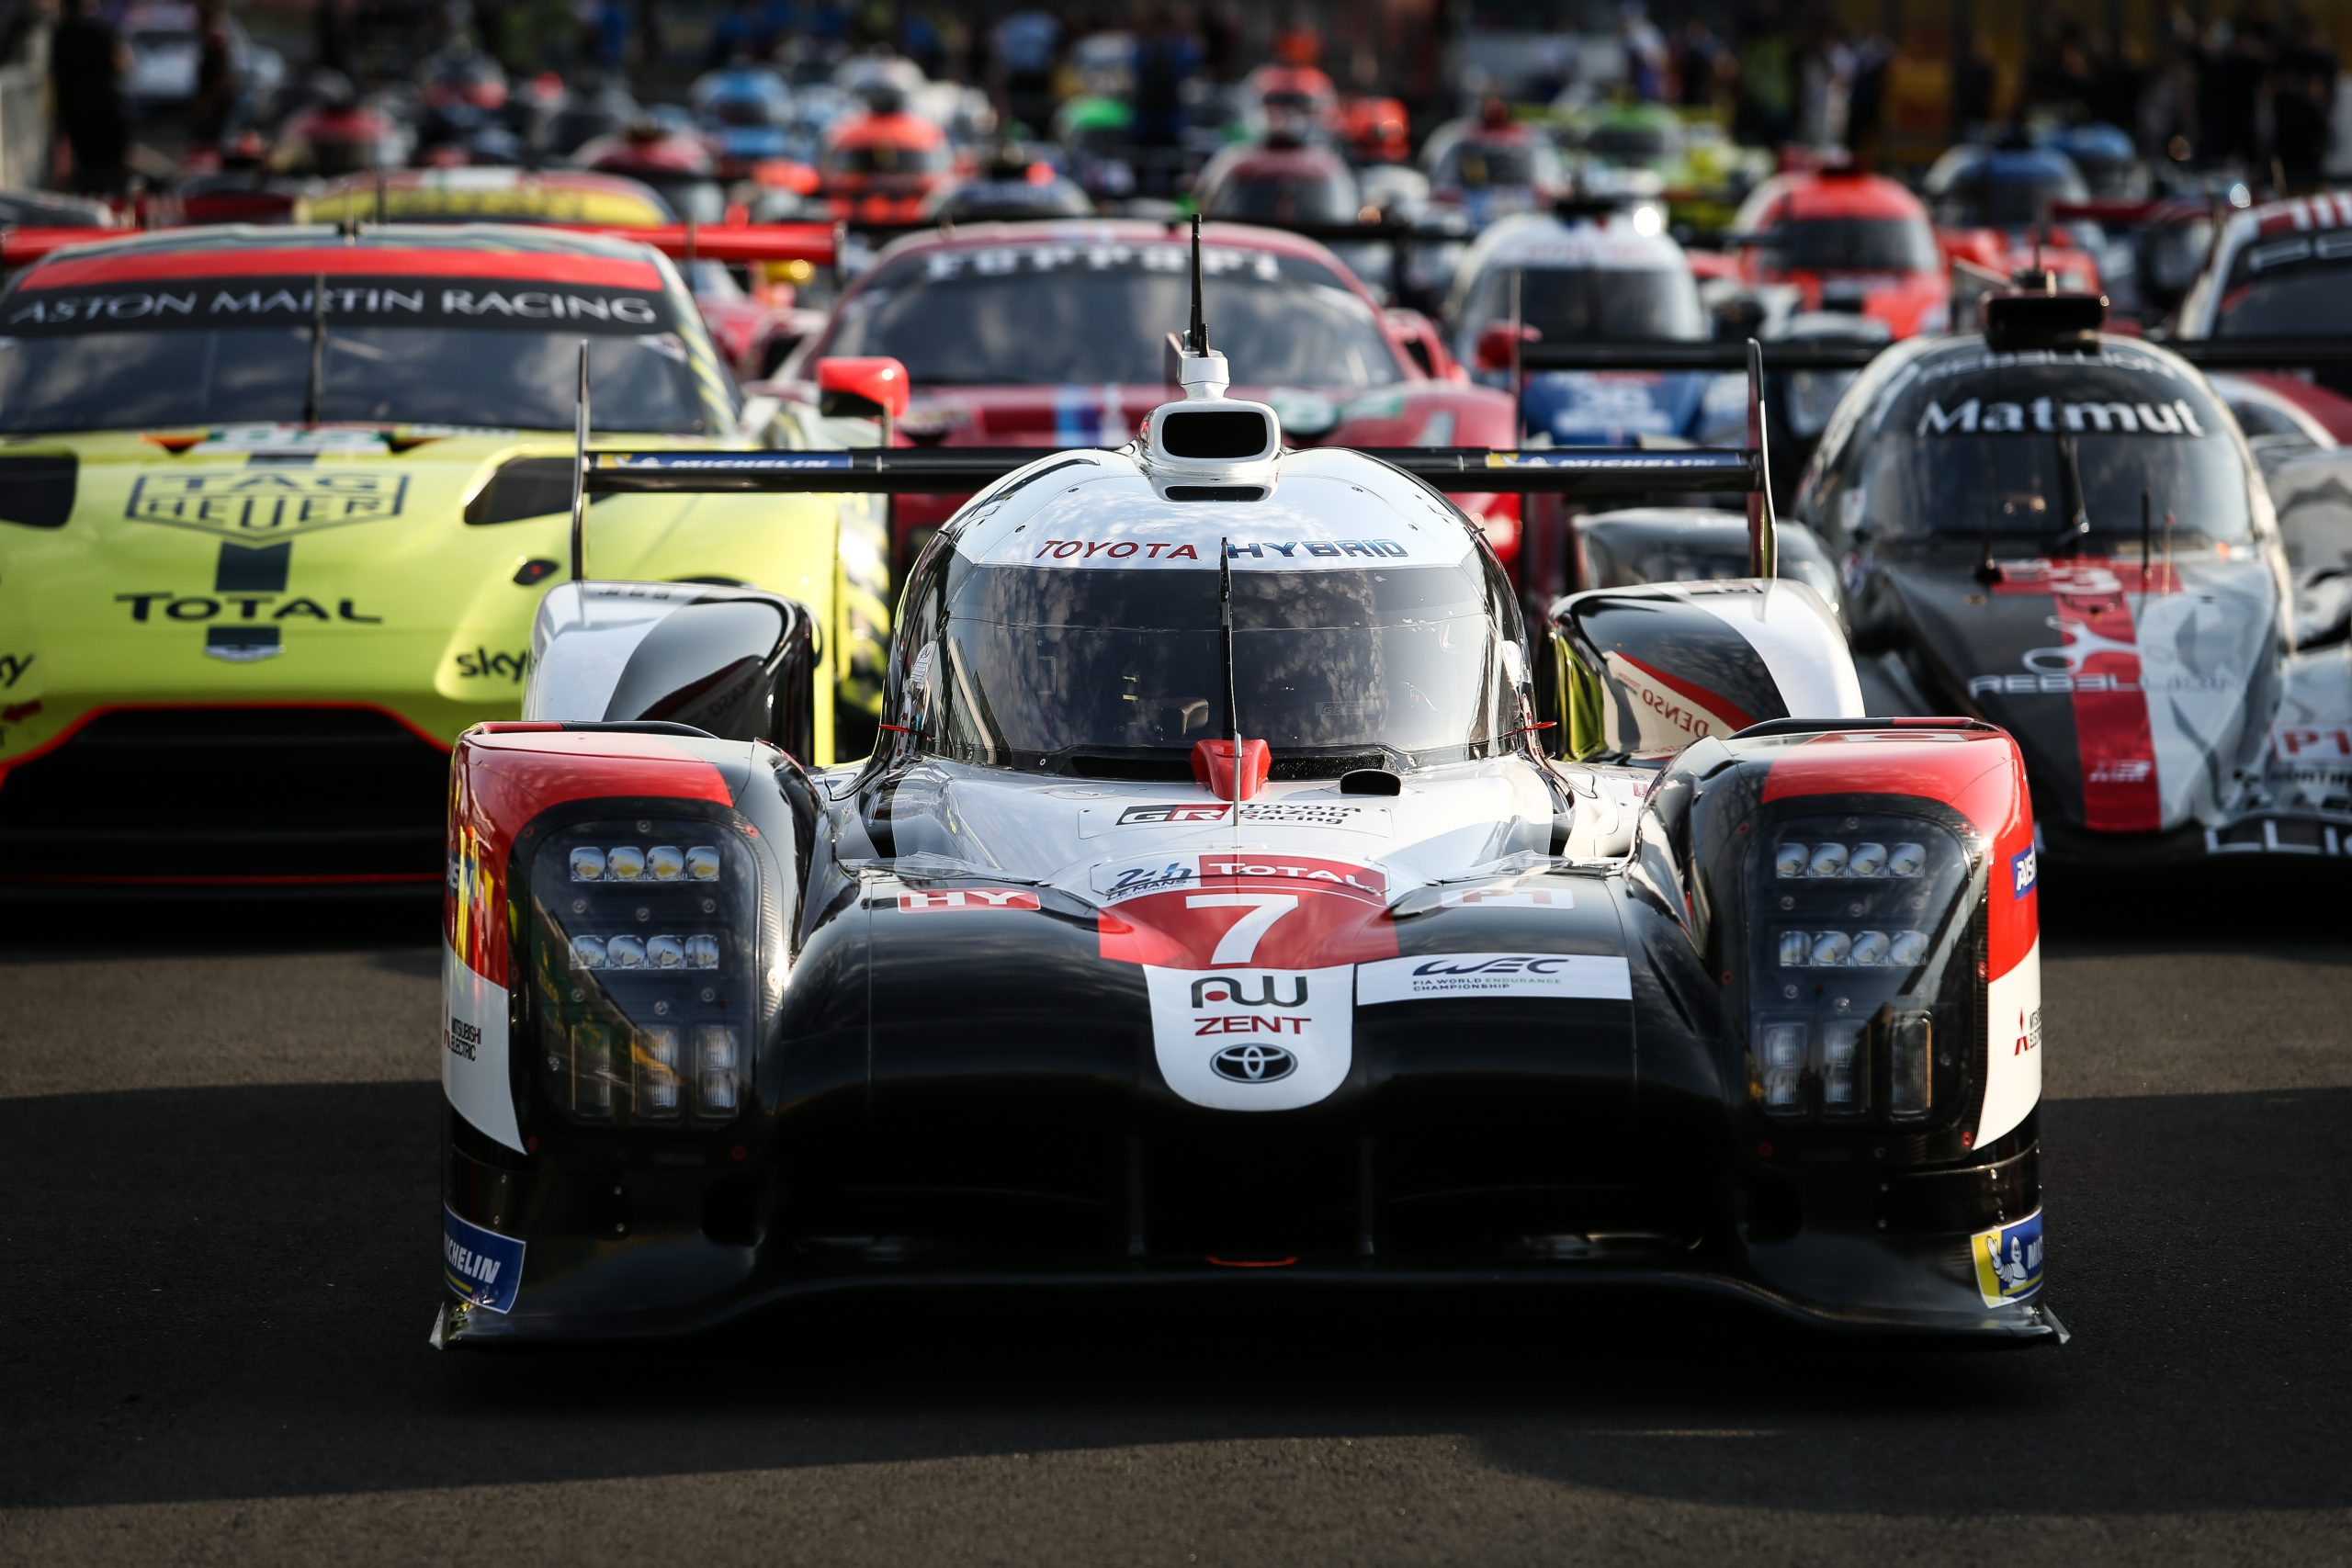 24 Hours of Le Mans postponed until August 2021